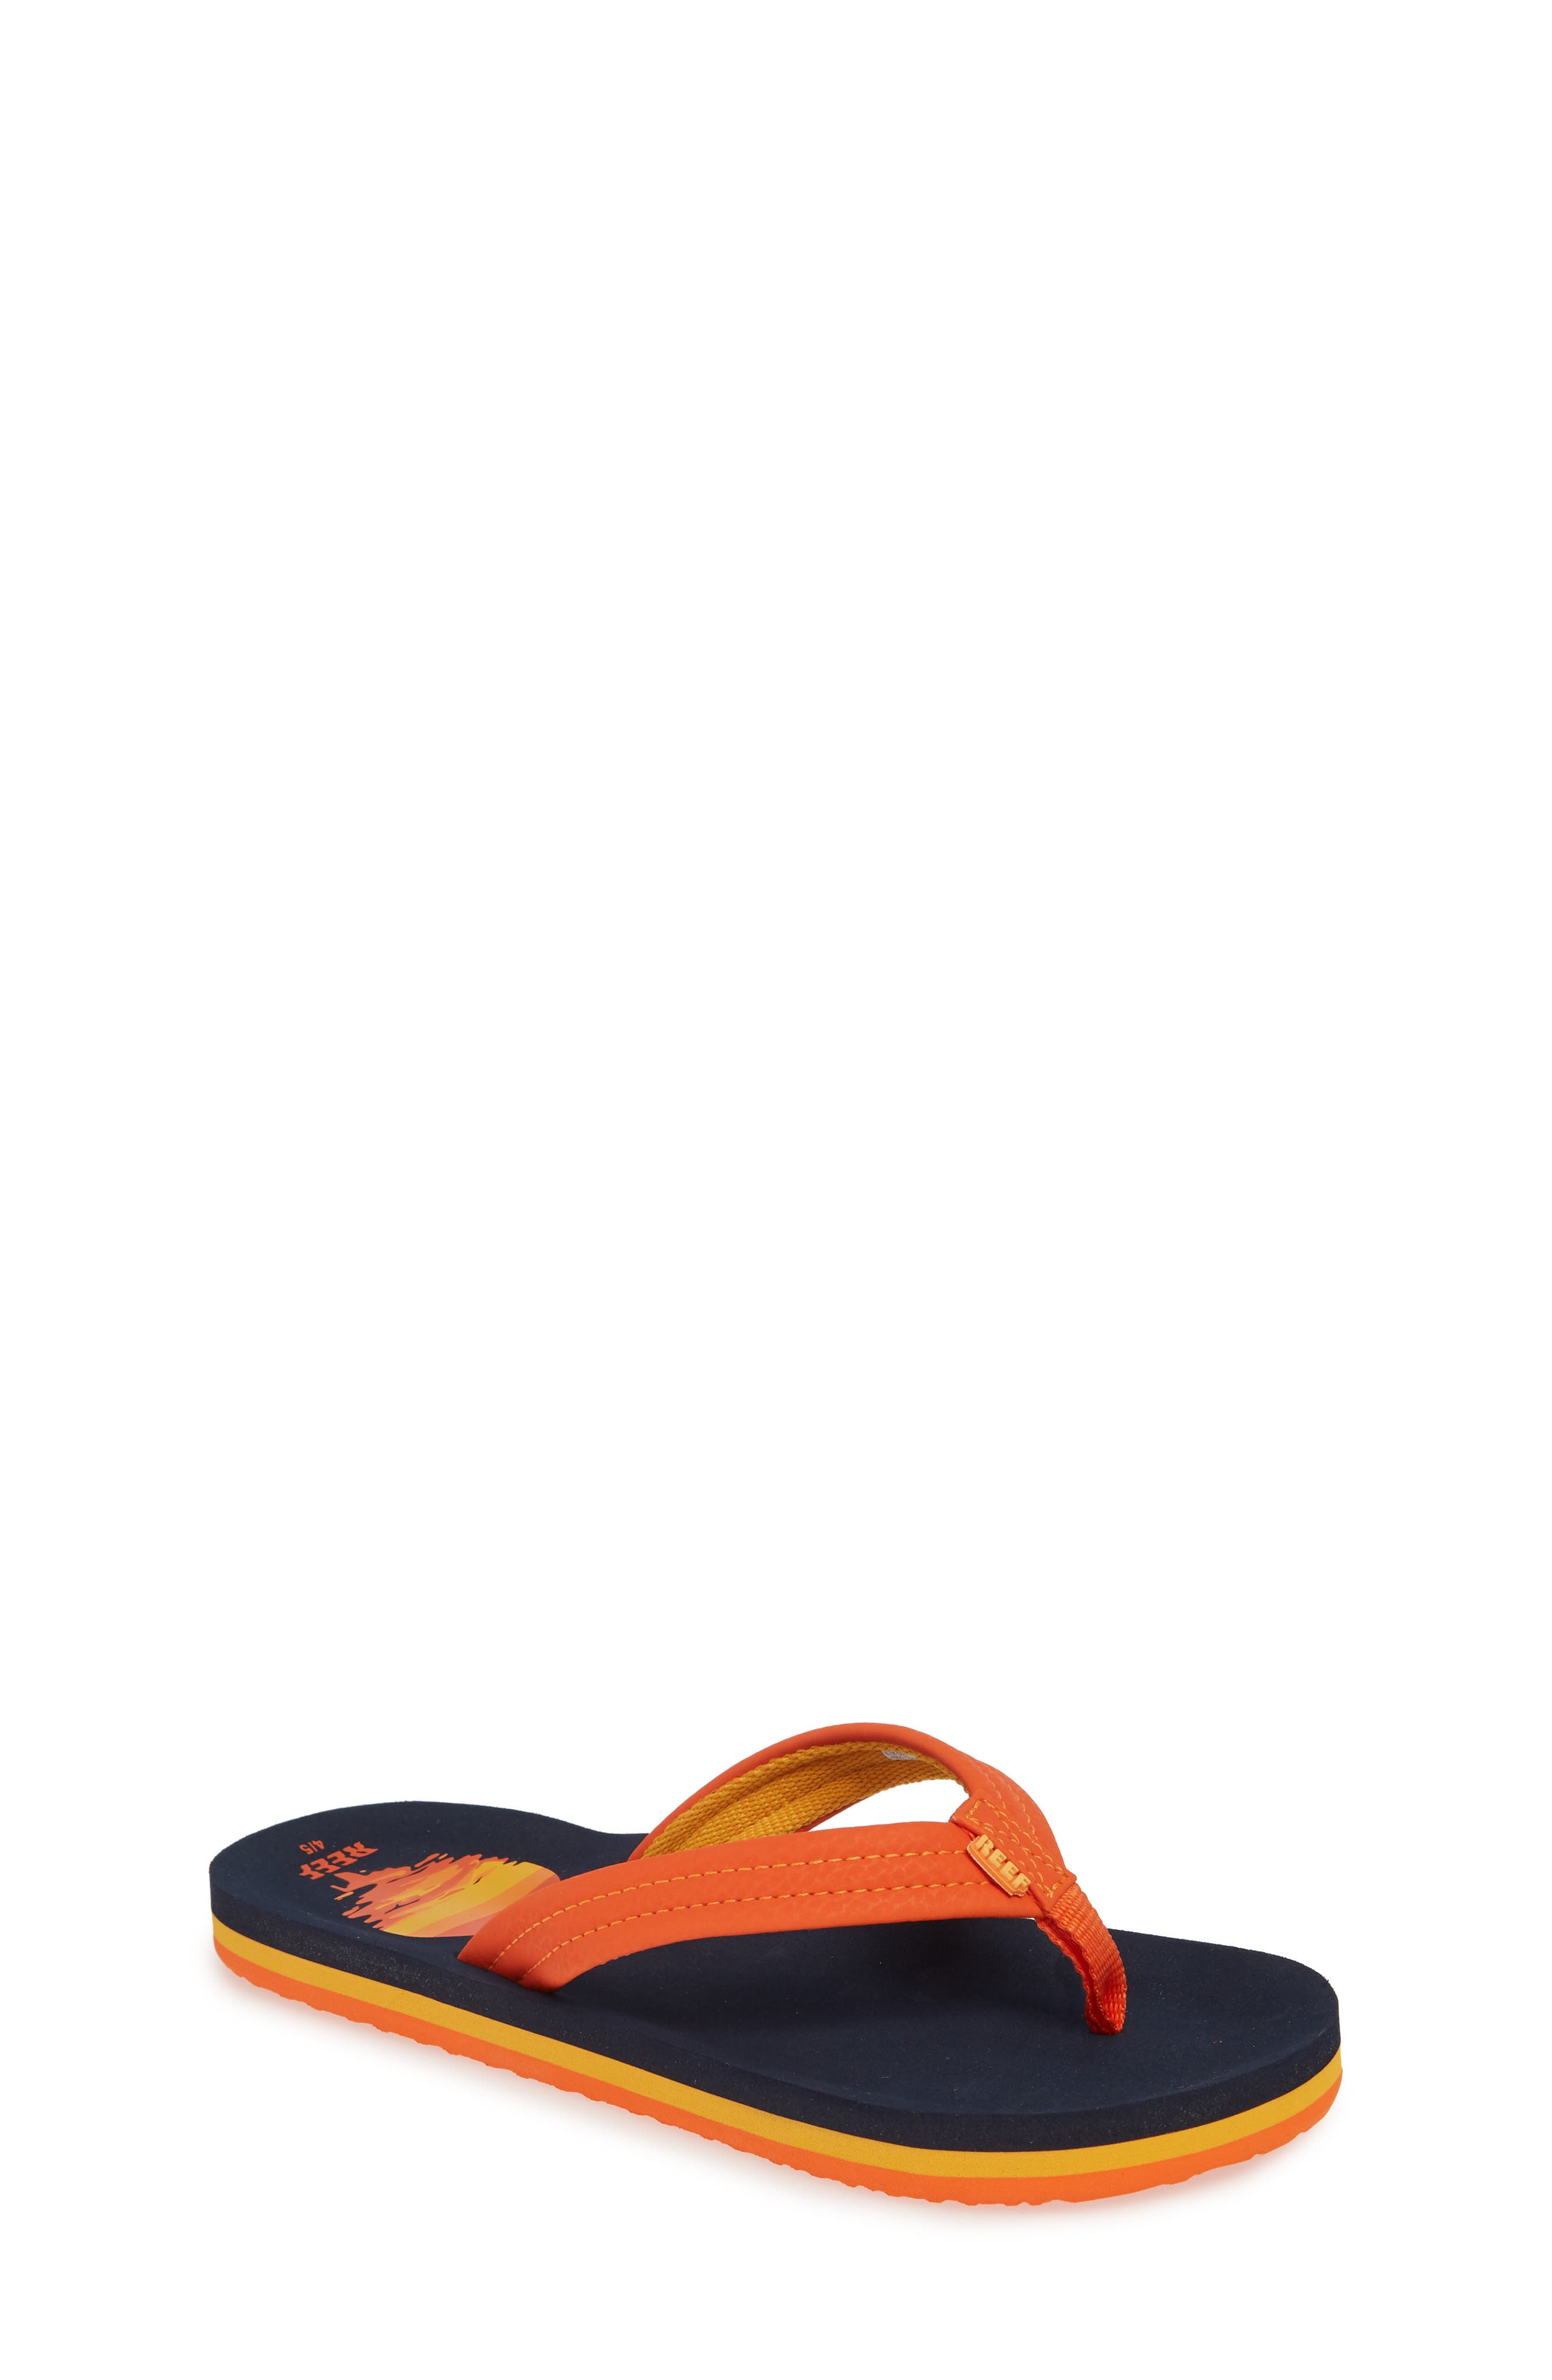 c8ceba33914d Reef Kids  Sandals